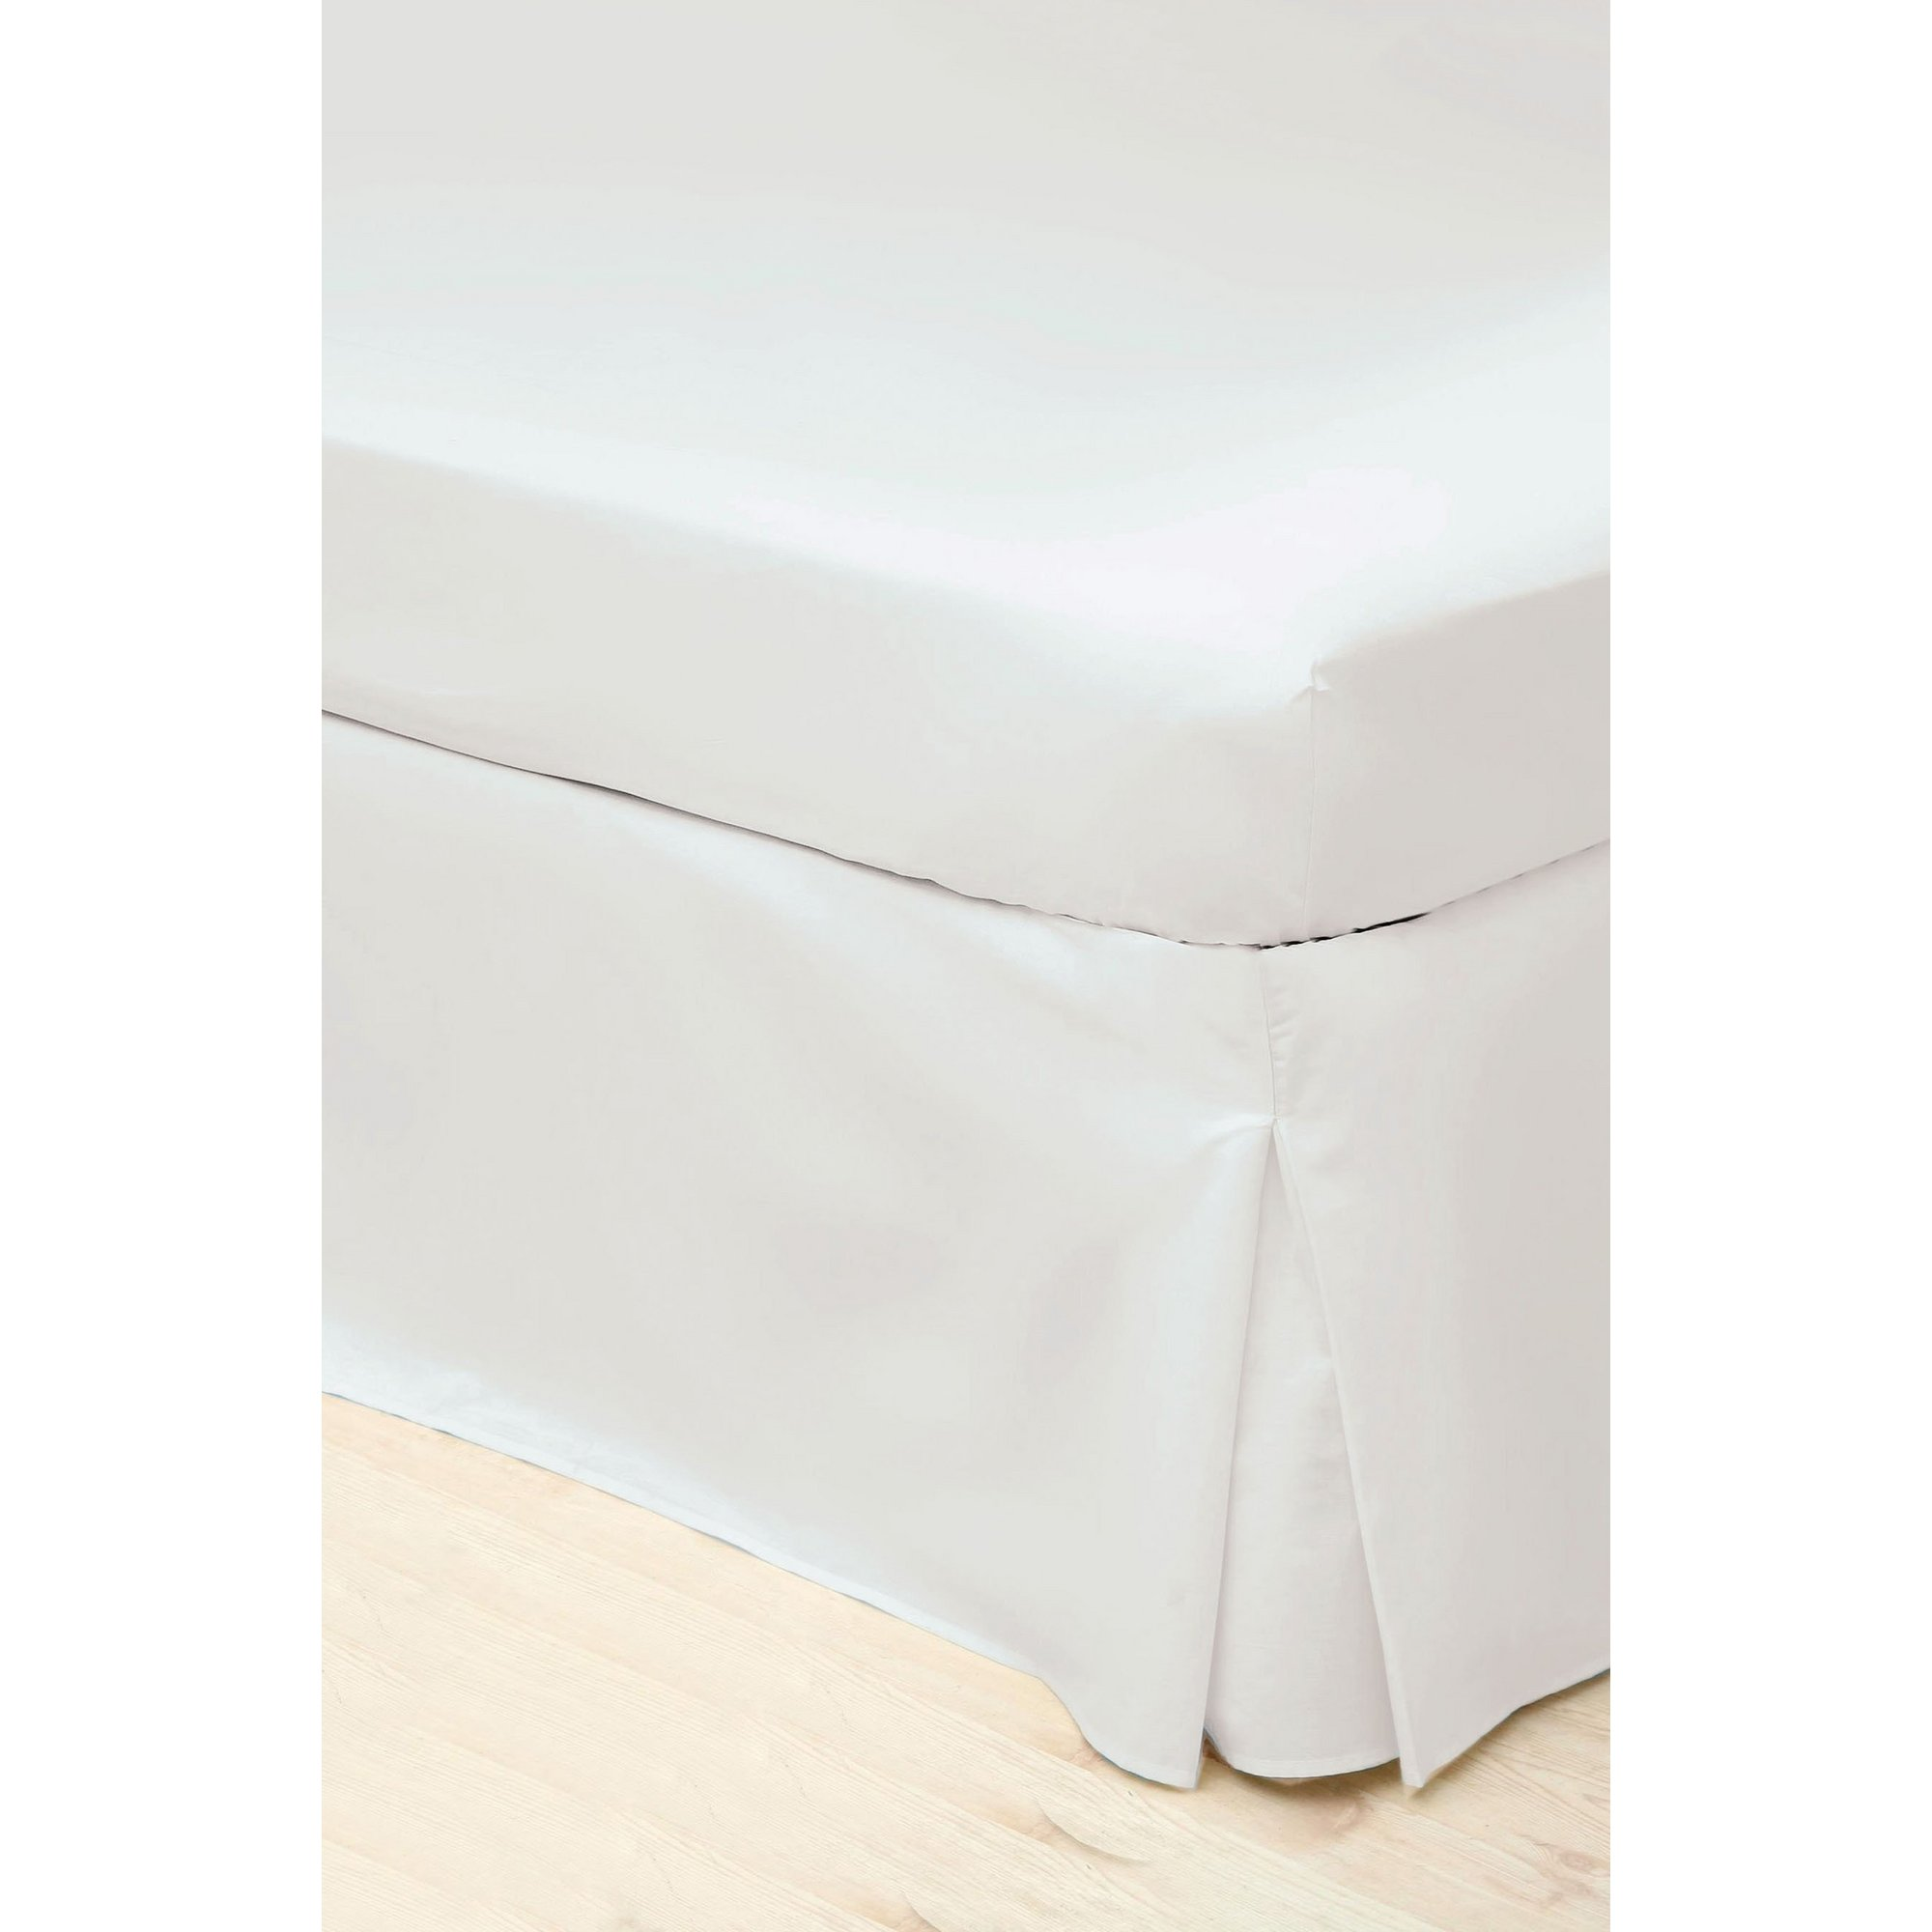 Image of 200 Count Percale Platform Pleated Valance Sheet